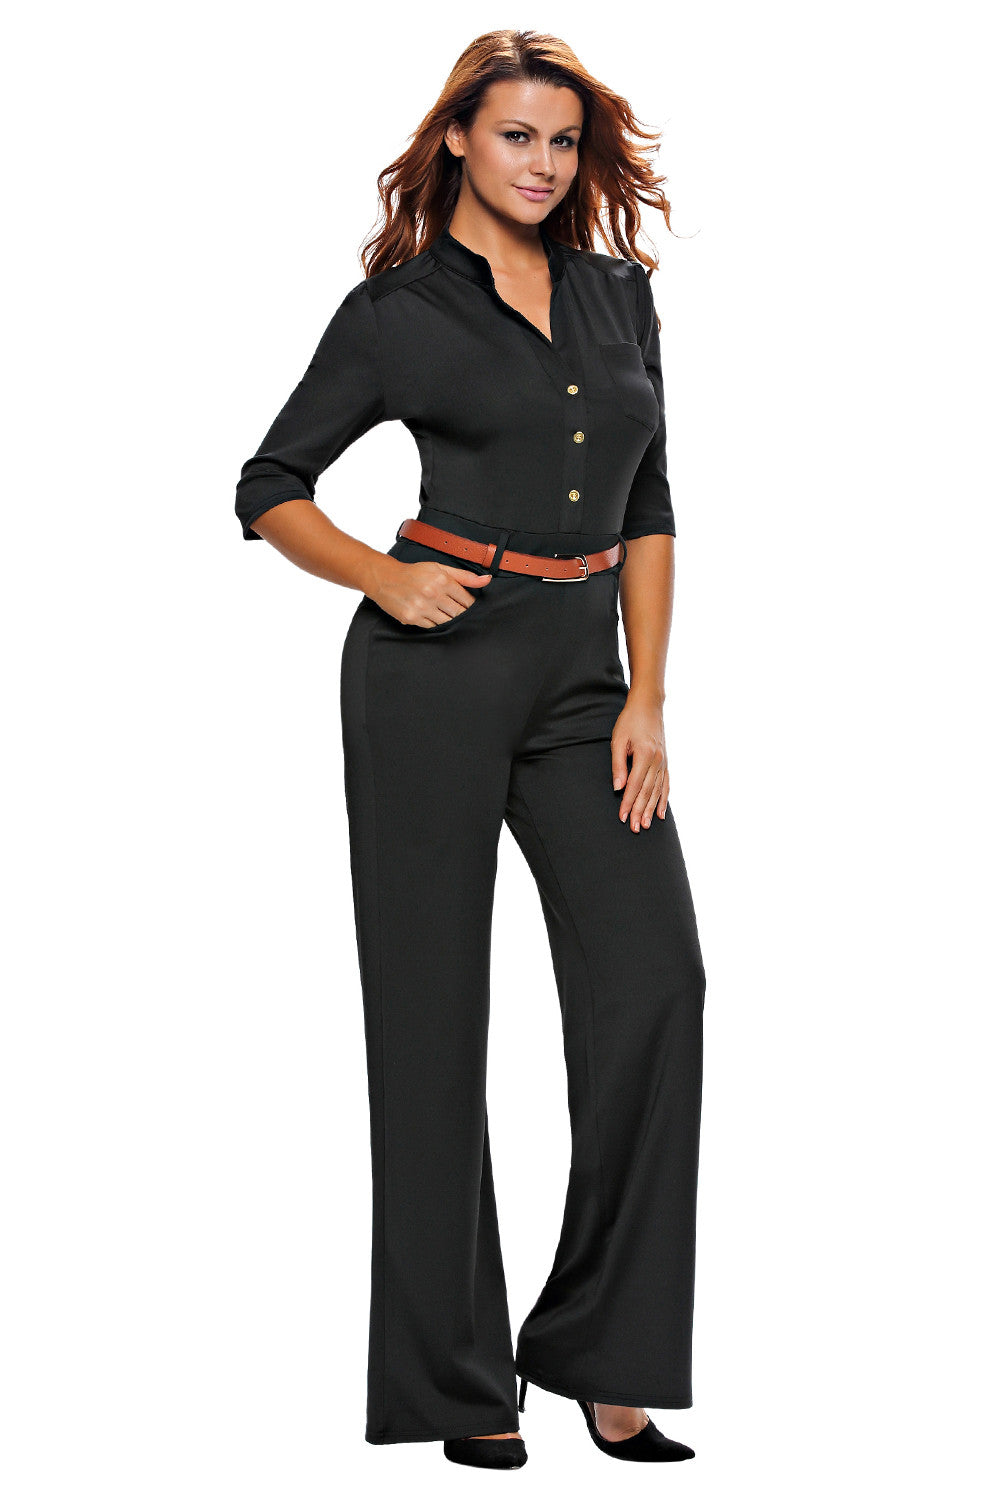 Half Sleeve Diva Fashion Wide Leg Jumpsuit 64205 - IBL Fashion - 5